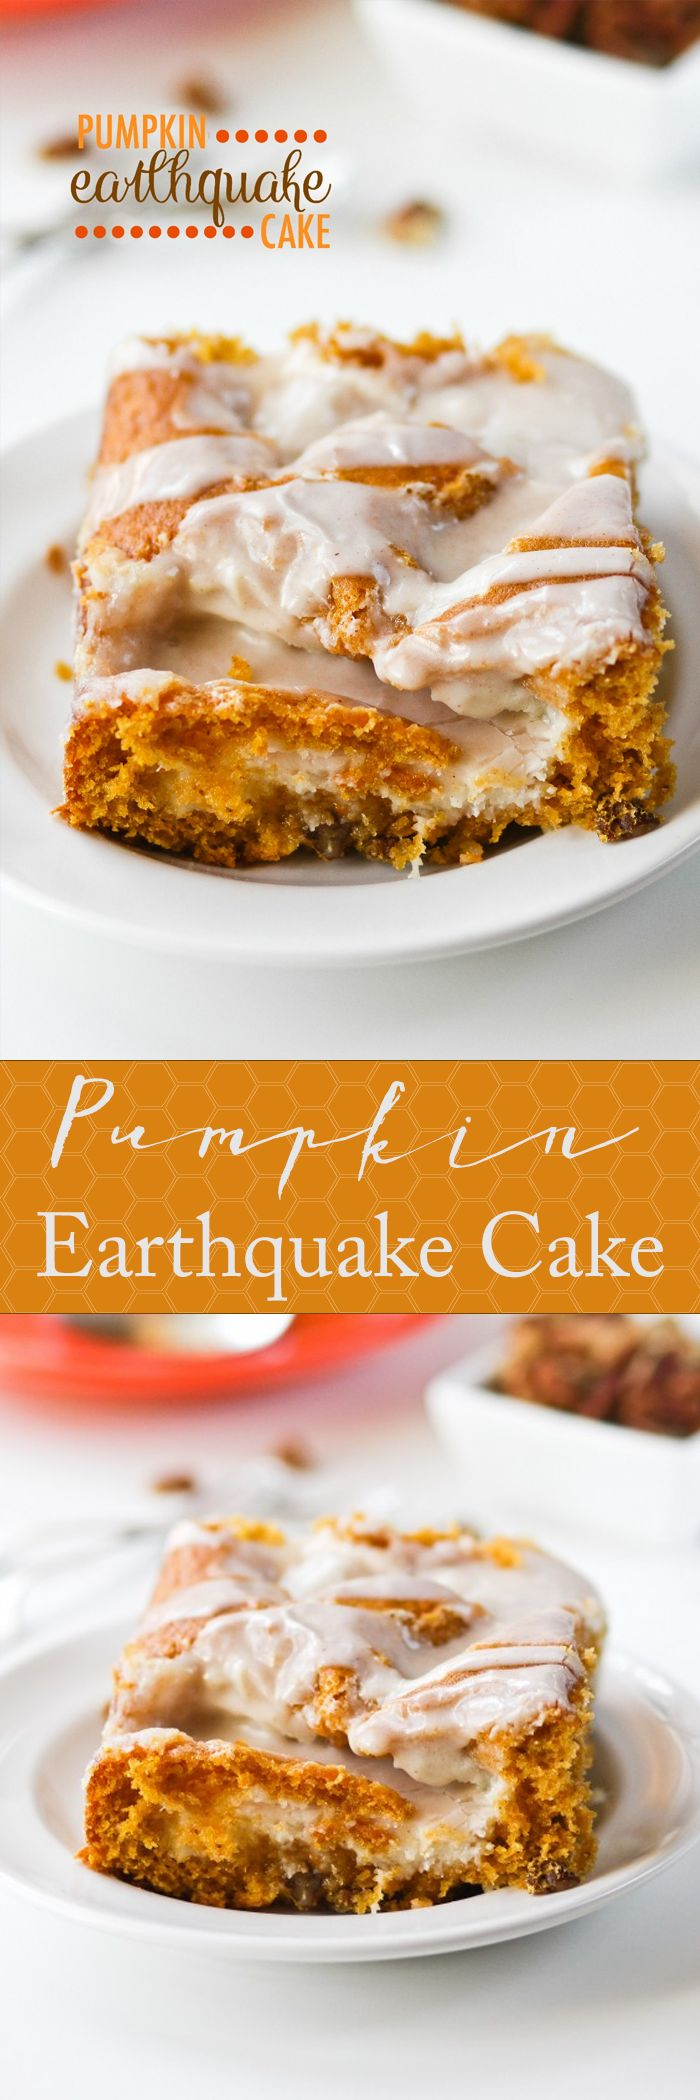 Pumpkin Earthquake Cake -- a layer of pecans and coconut, pockets of cream cheese, and a cinnamon glaze. Loved this recipe so much!